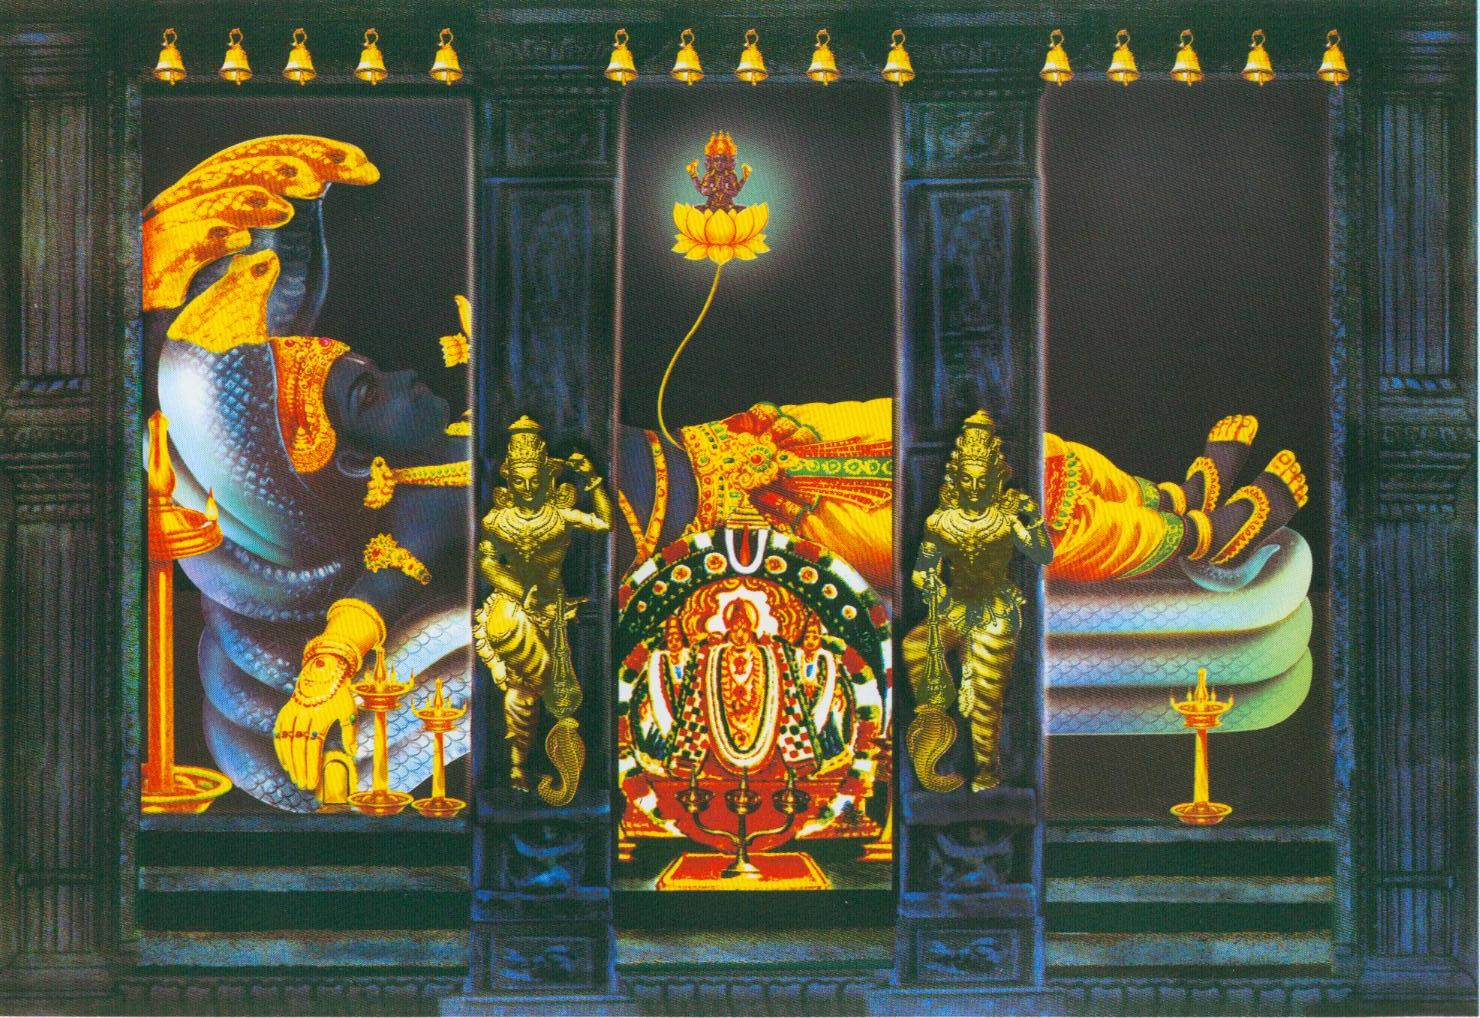 Sree padmanabhaswamy temple historical significance and photo gallery